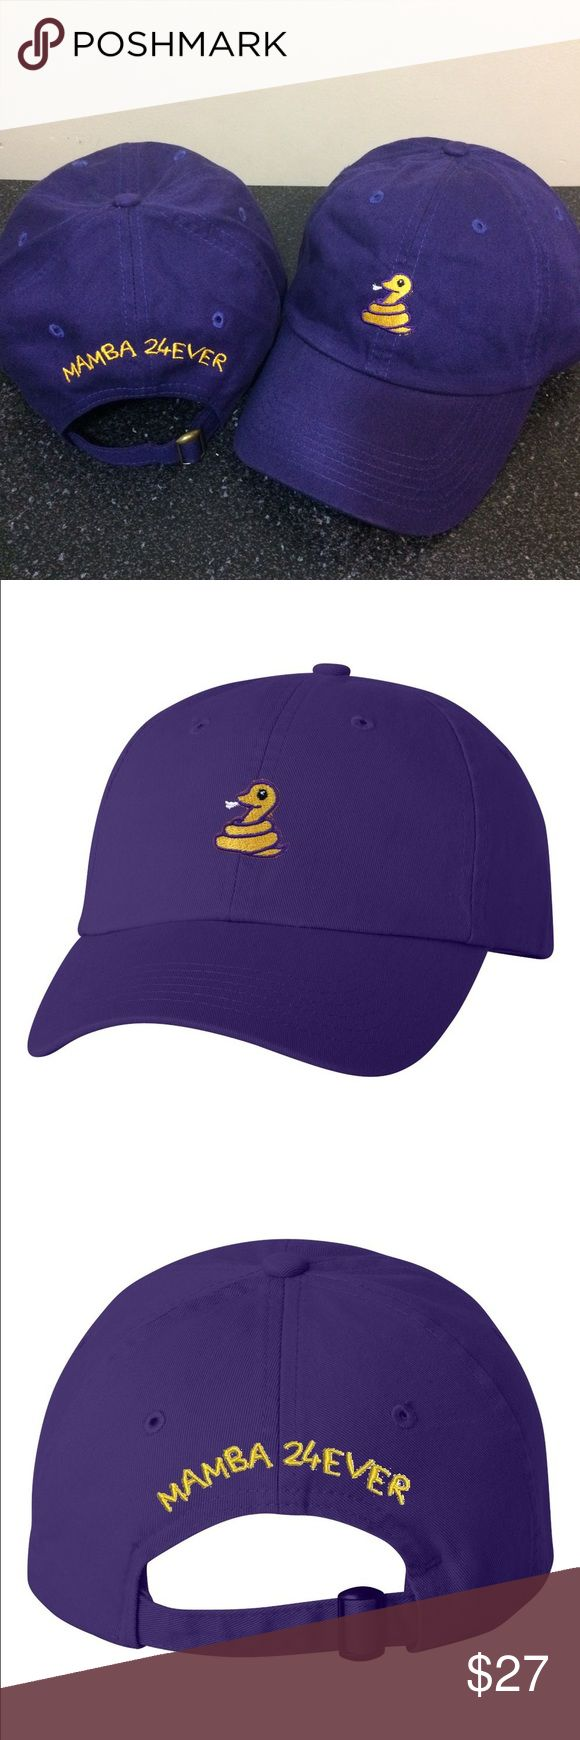 Mamba 24 Ever Kobe Bryant Adjustable Dad Cap - Hat Unisex Stitched/Embroidered Adjustable strap for a perfect fit.   (Due to dye and wash process there may be some slight variation in color and sizing) If you have any further questions just contact us and we will be happy to assist you! Valued Cap Accessories Hats